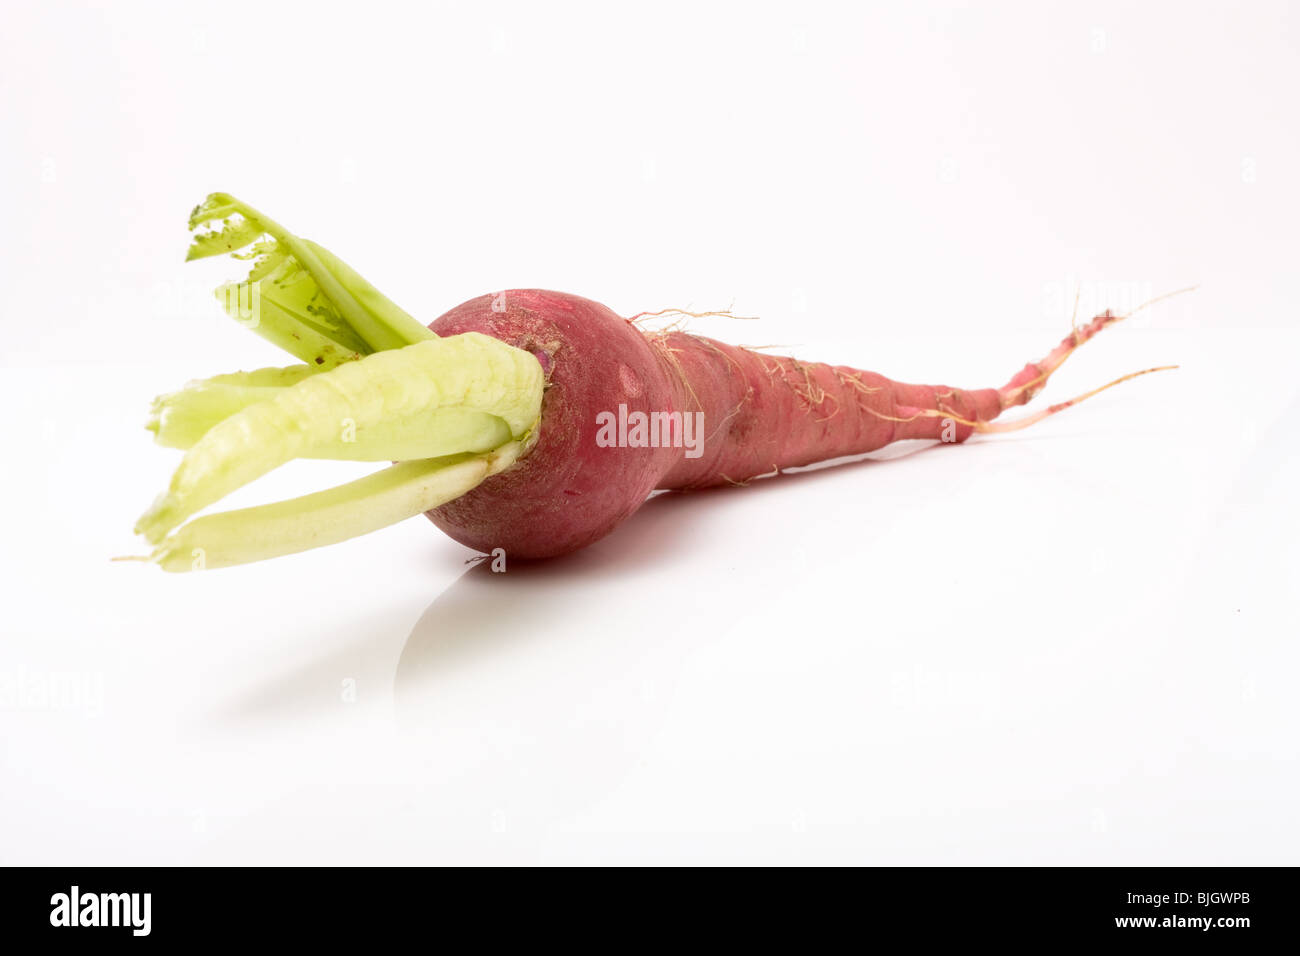 Red mooli also known as Japanese radish isolated on white background. - Stock Image